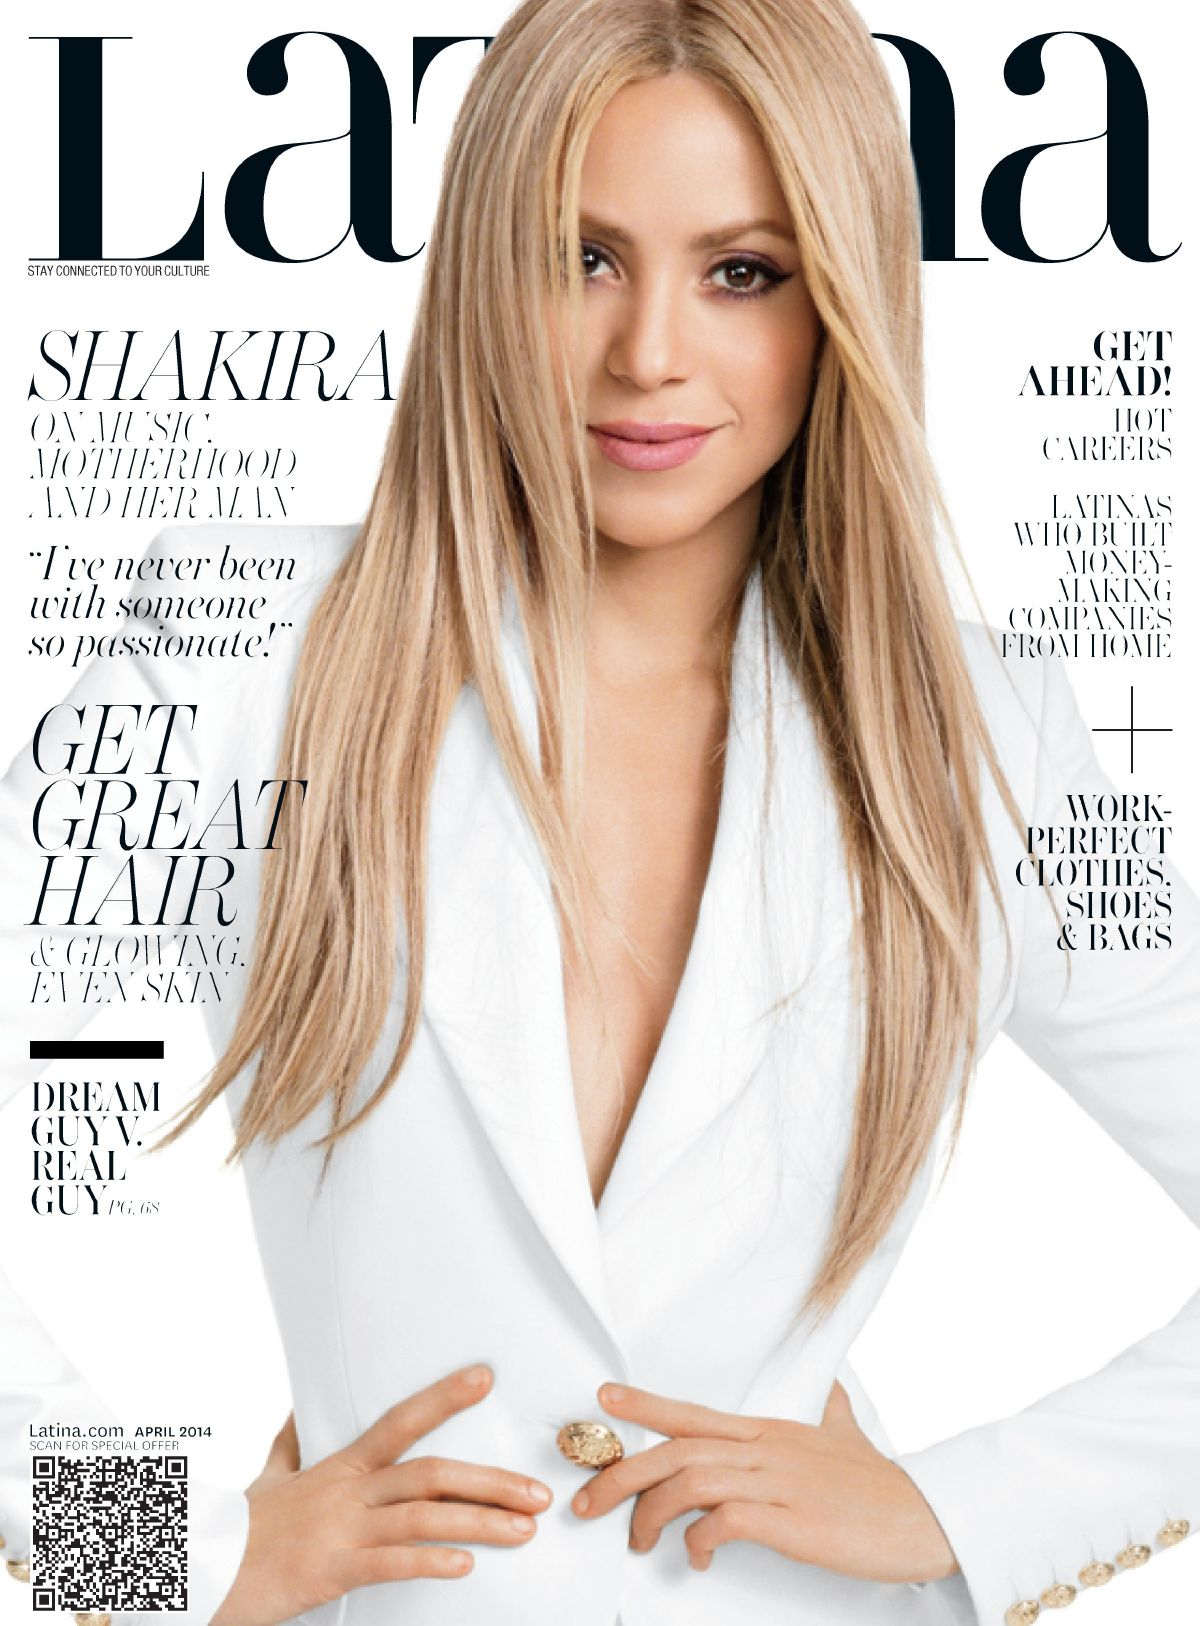 SHAKIRA on the Cover of Latina Magazine, April 2014 Issuee